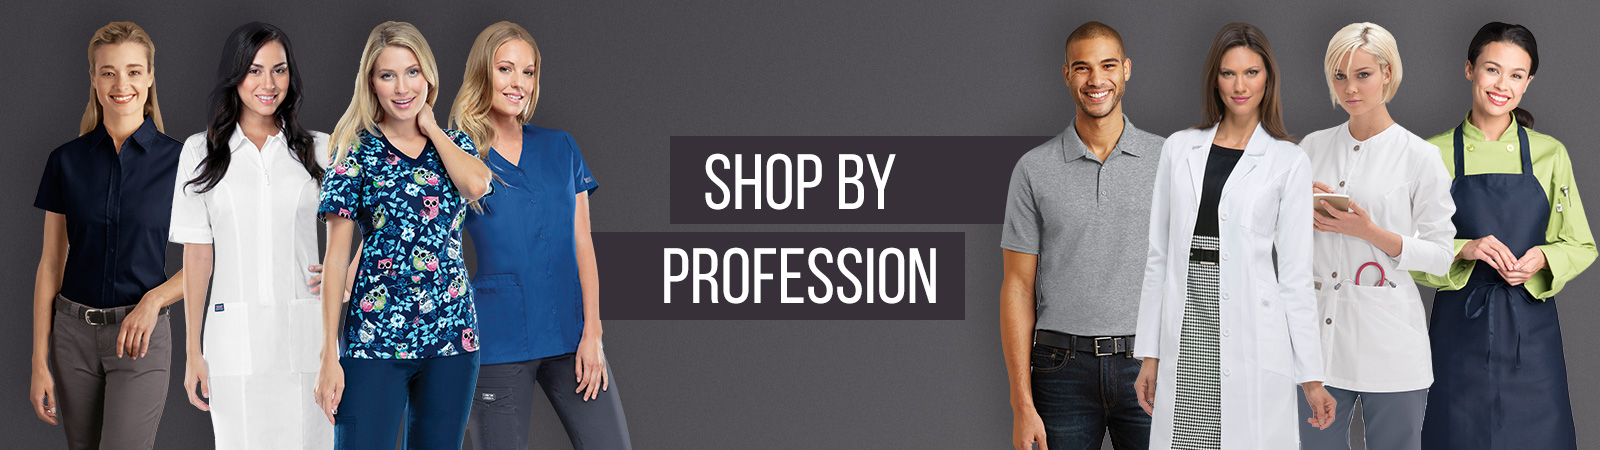 Shop by profession